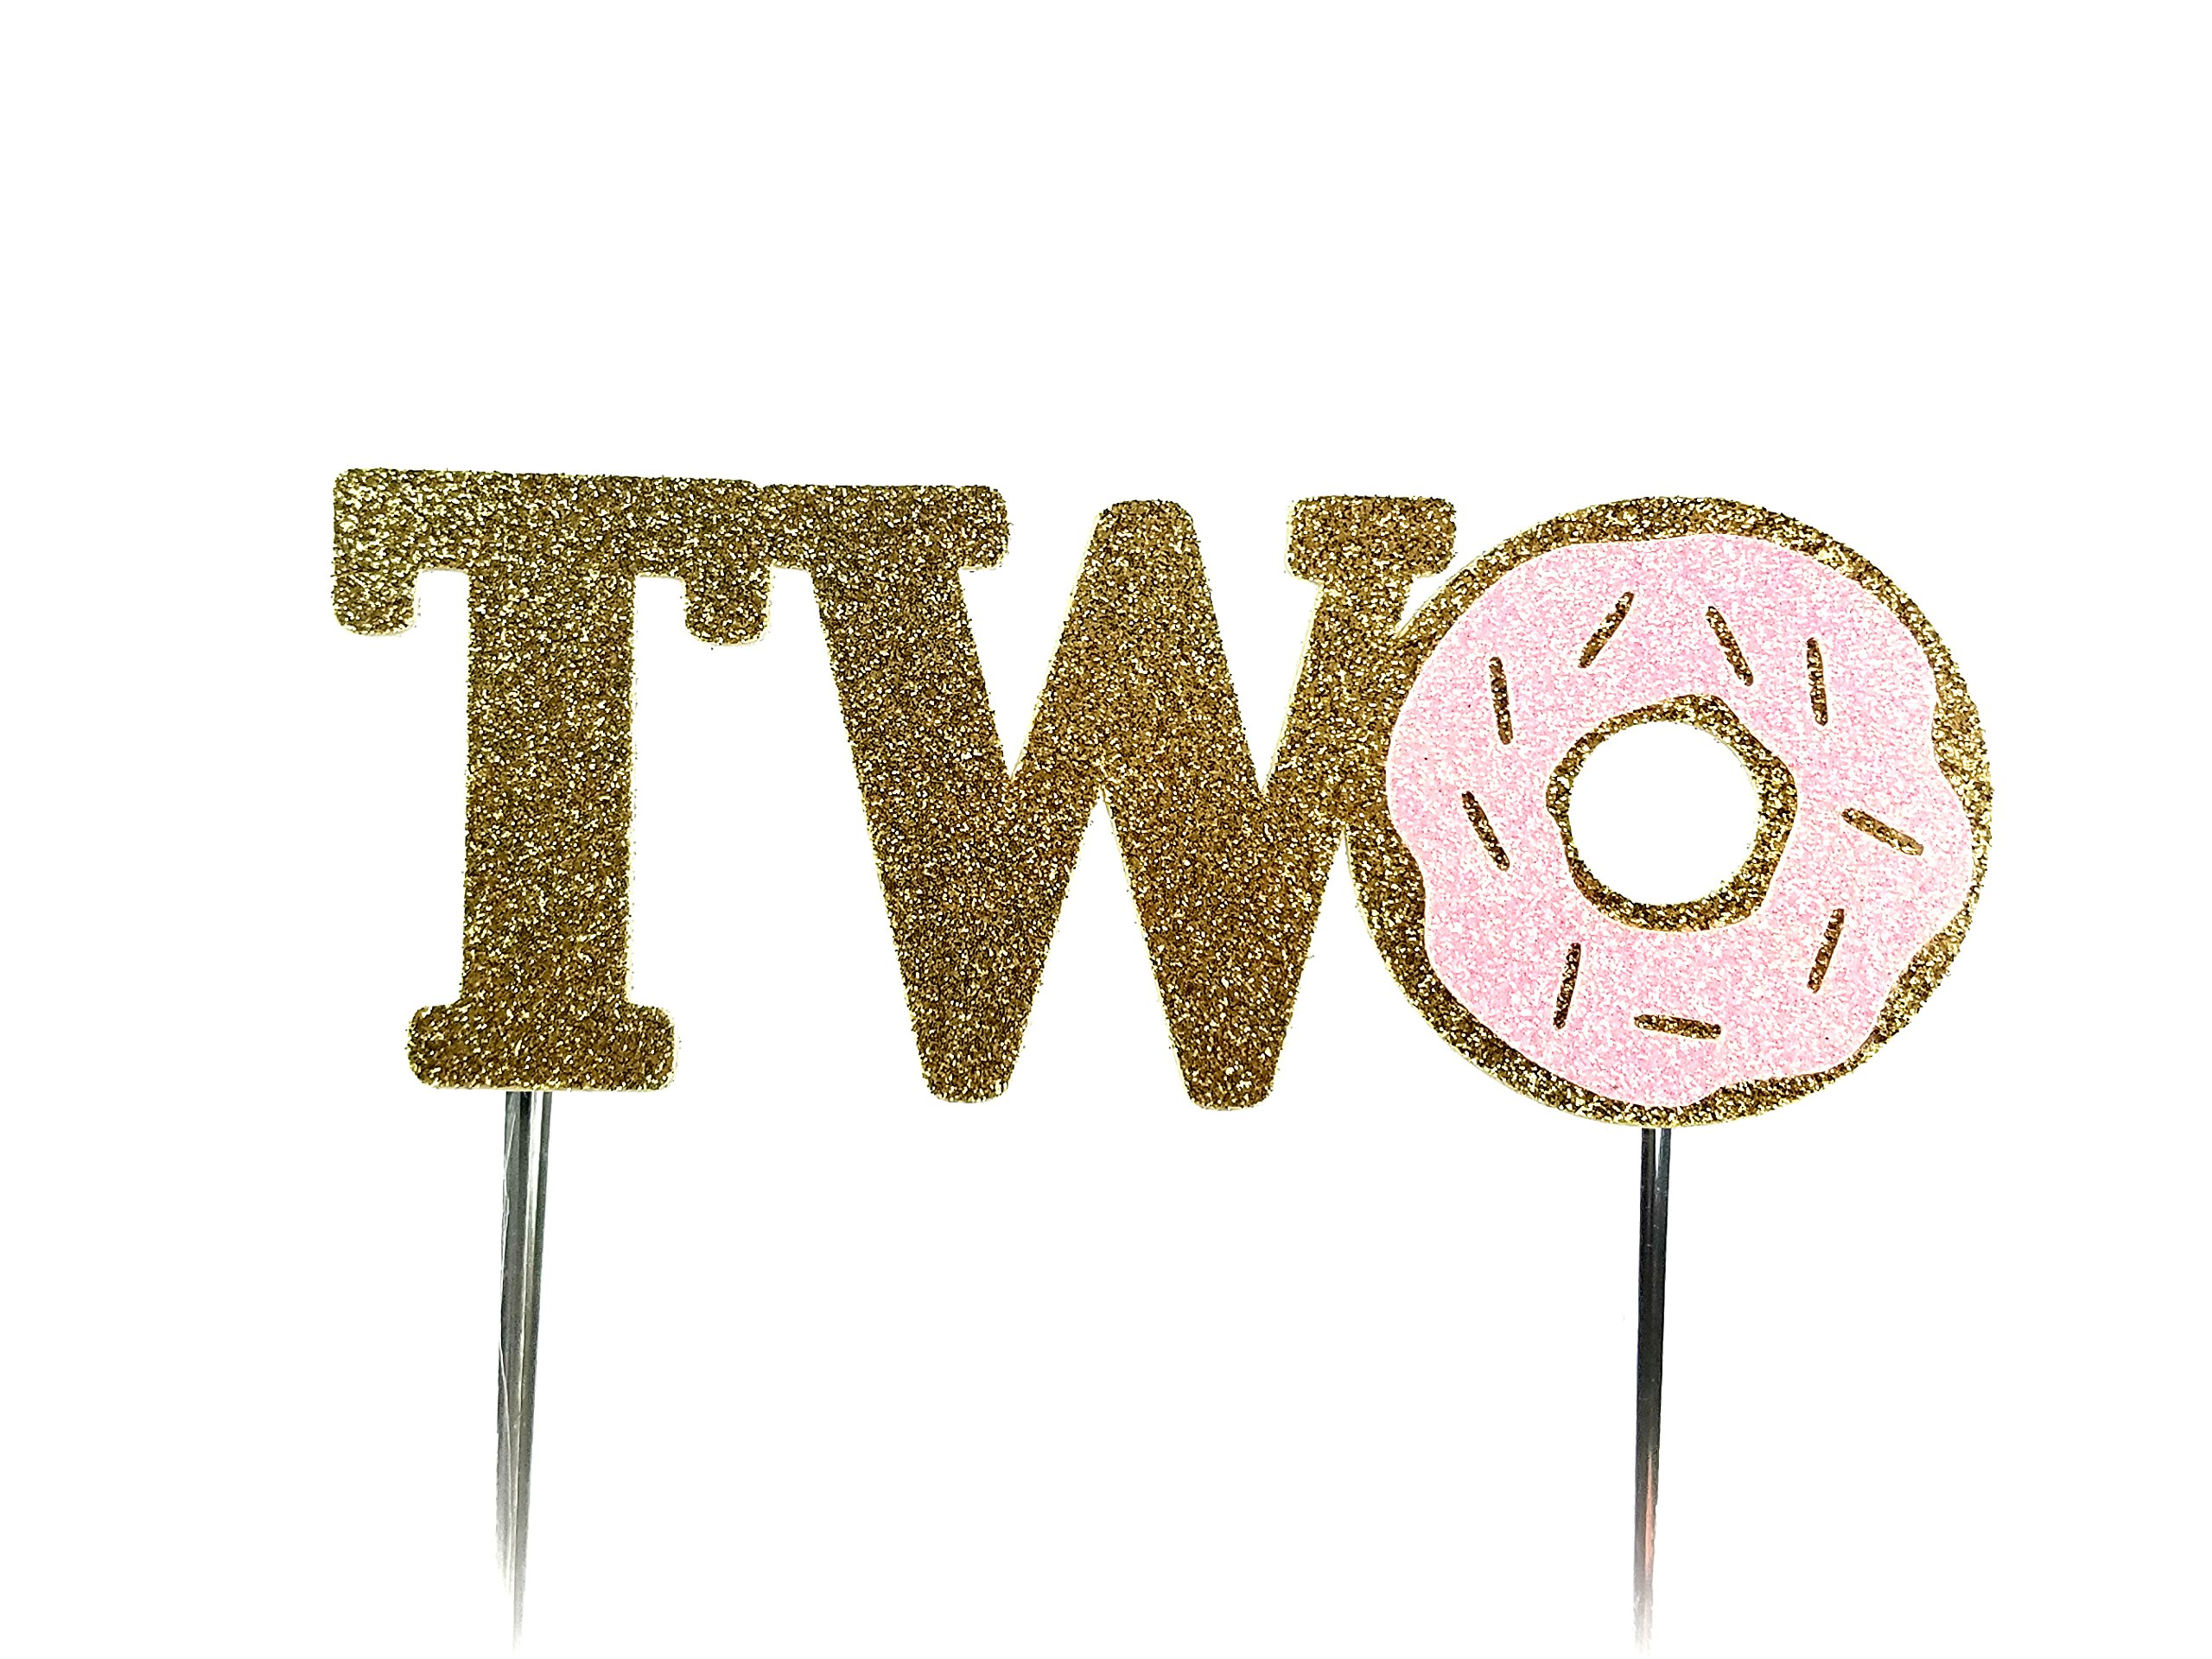 Handmade 2nd Second Donut Birthday Cake Topper Decoration - two - Made in USA with Double Sided Gold Pink Glitter Stock